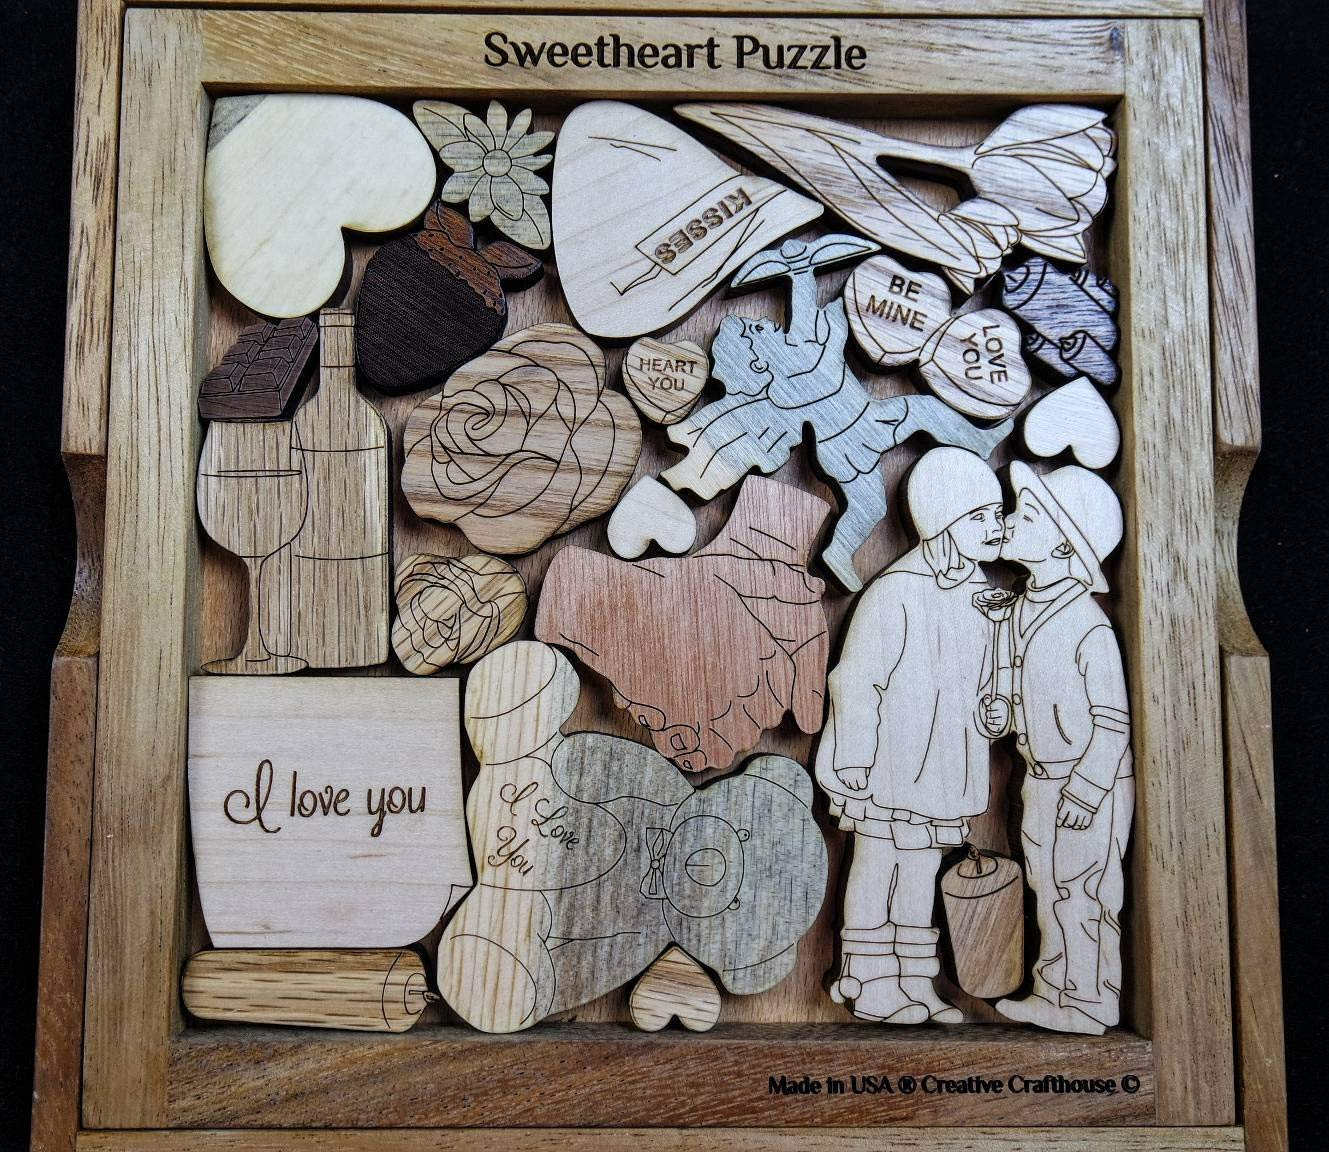 The Sweetheart Puzzle Can be personalized to add your custom text something unique for someone special